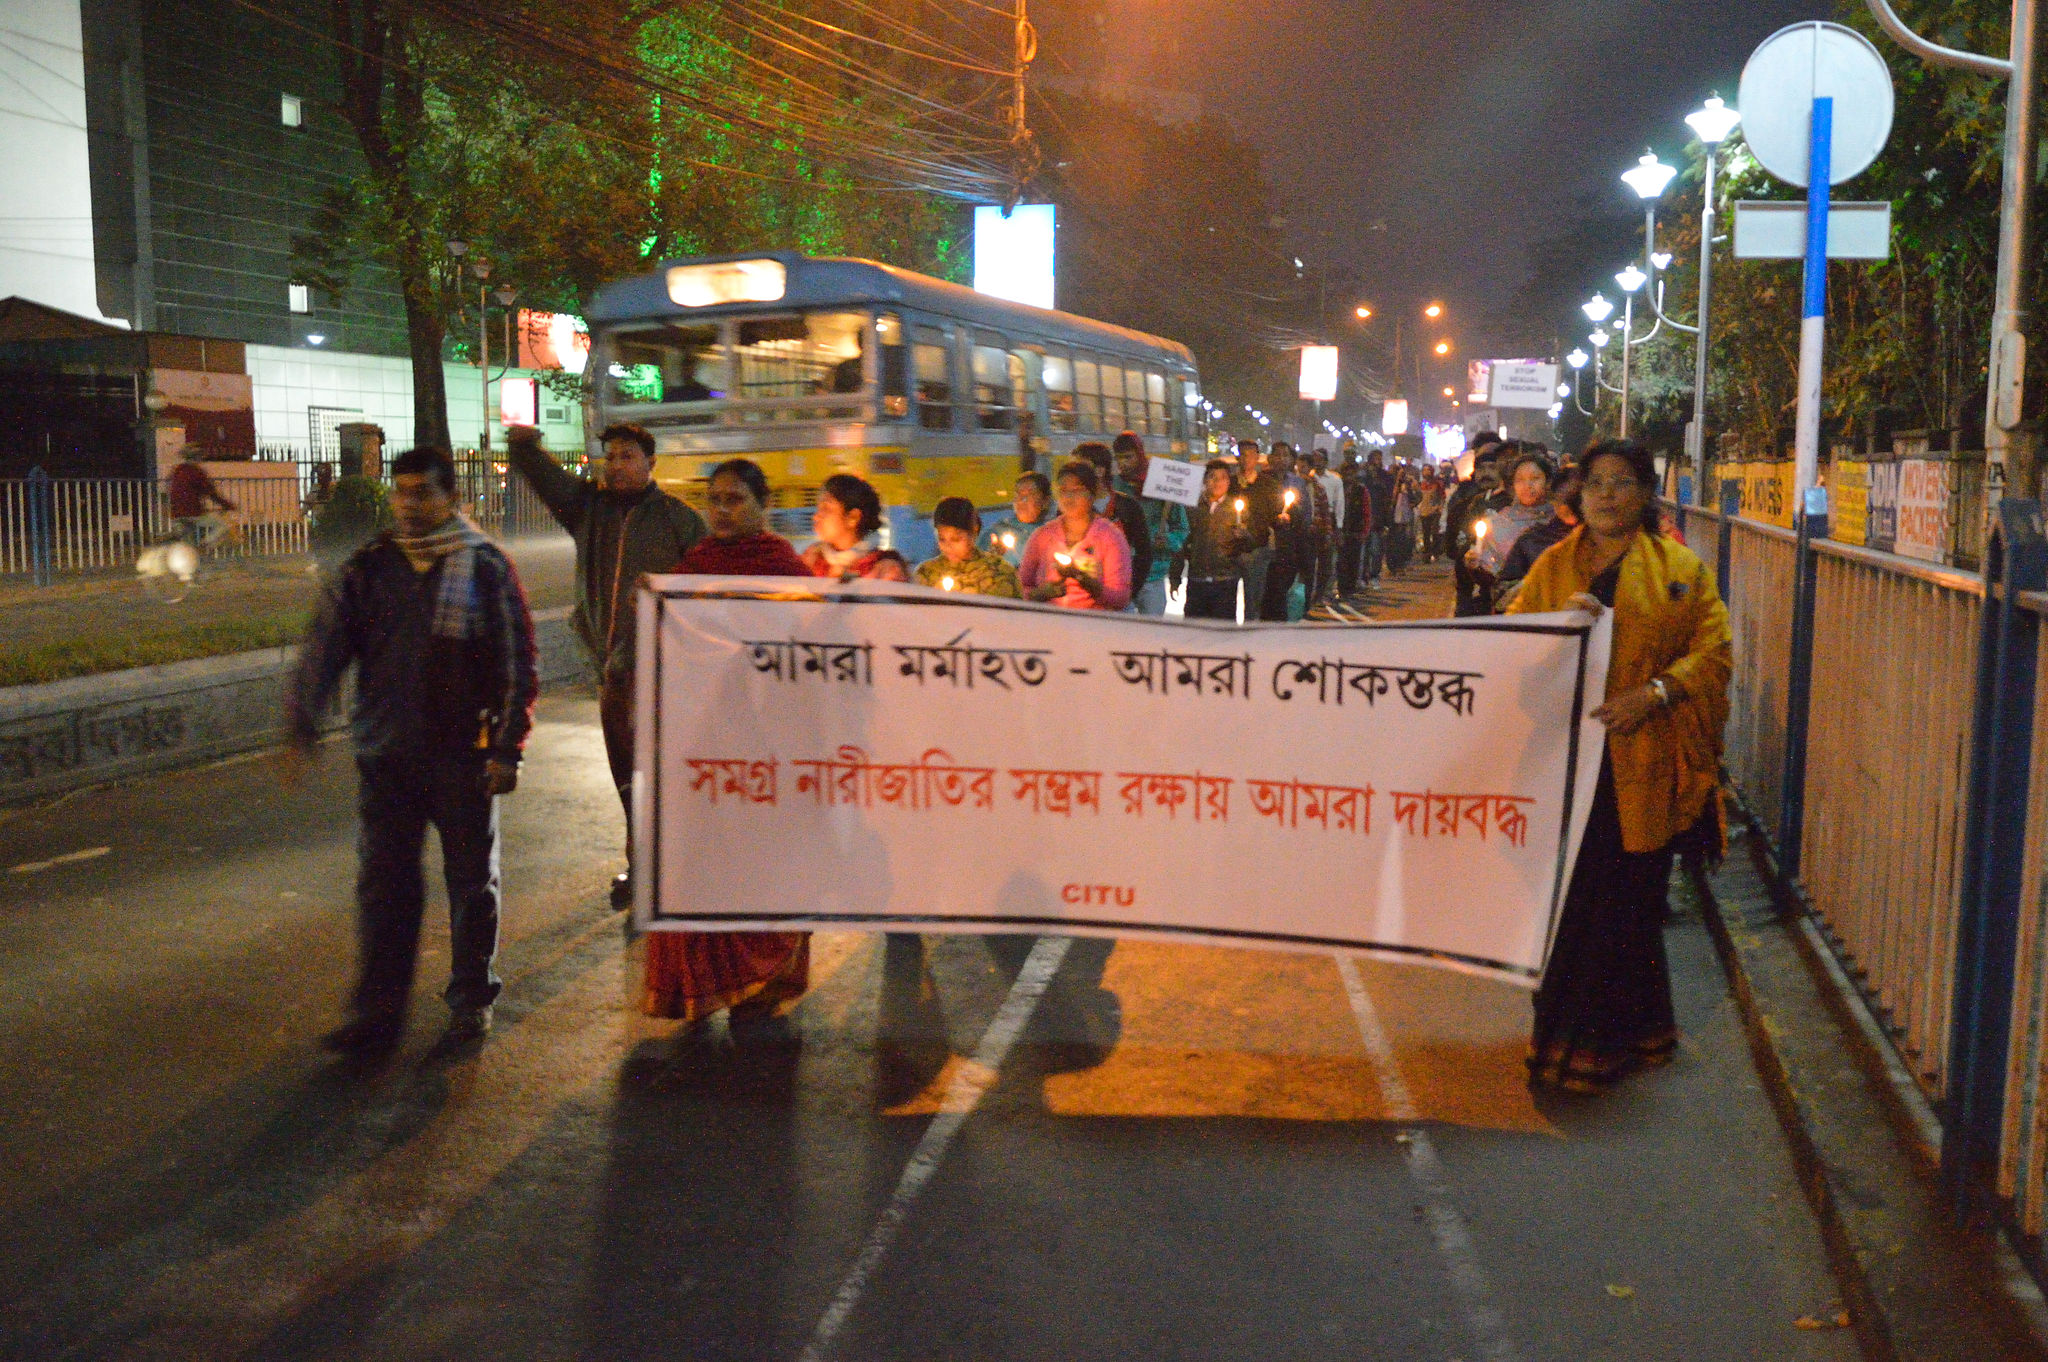 Silent Protest at Salt Lake City in Kolkata after Jyoti's death. Photo: Biswarup Ganguly